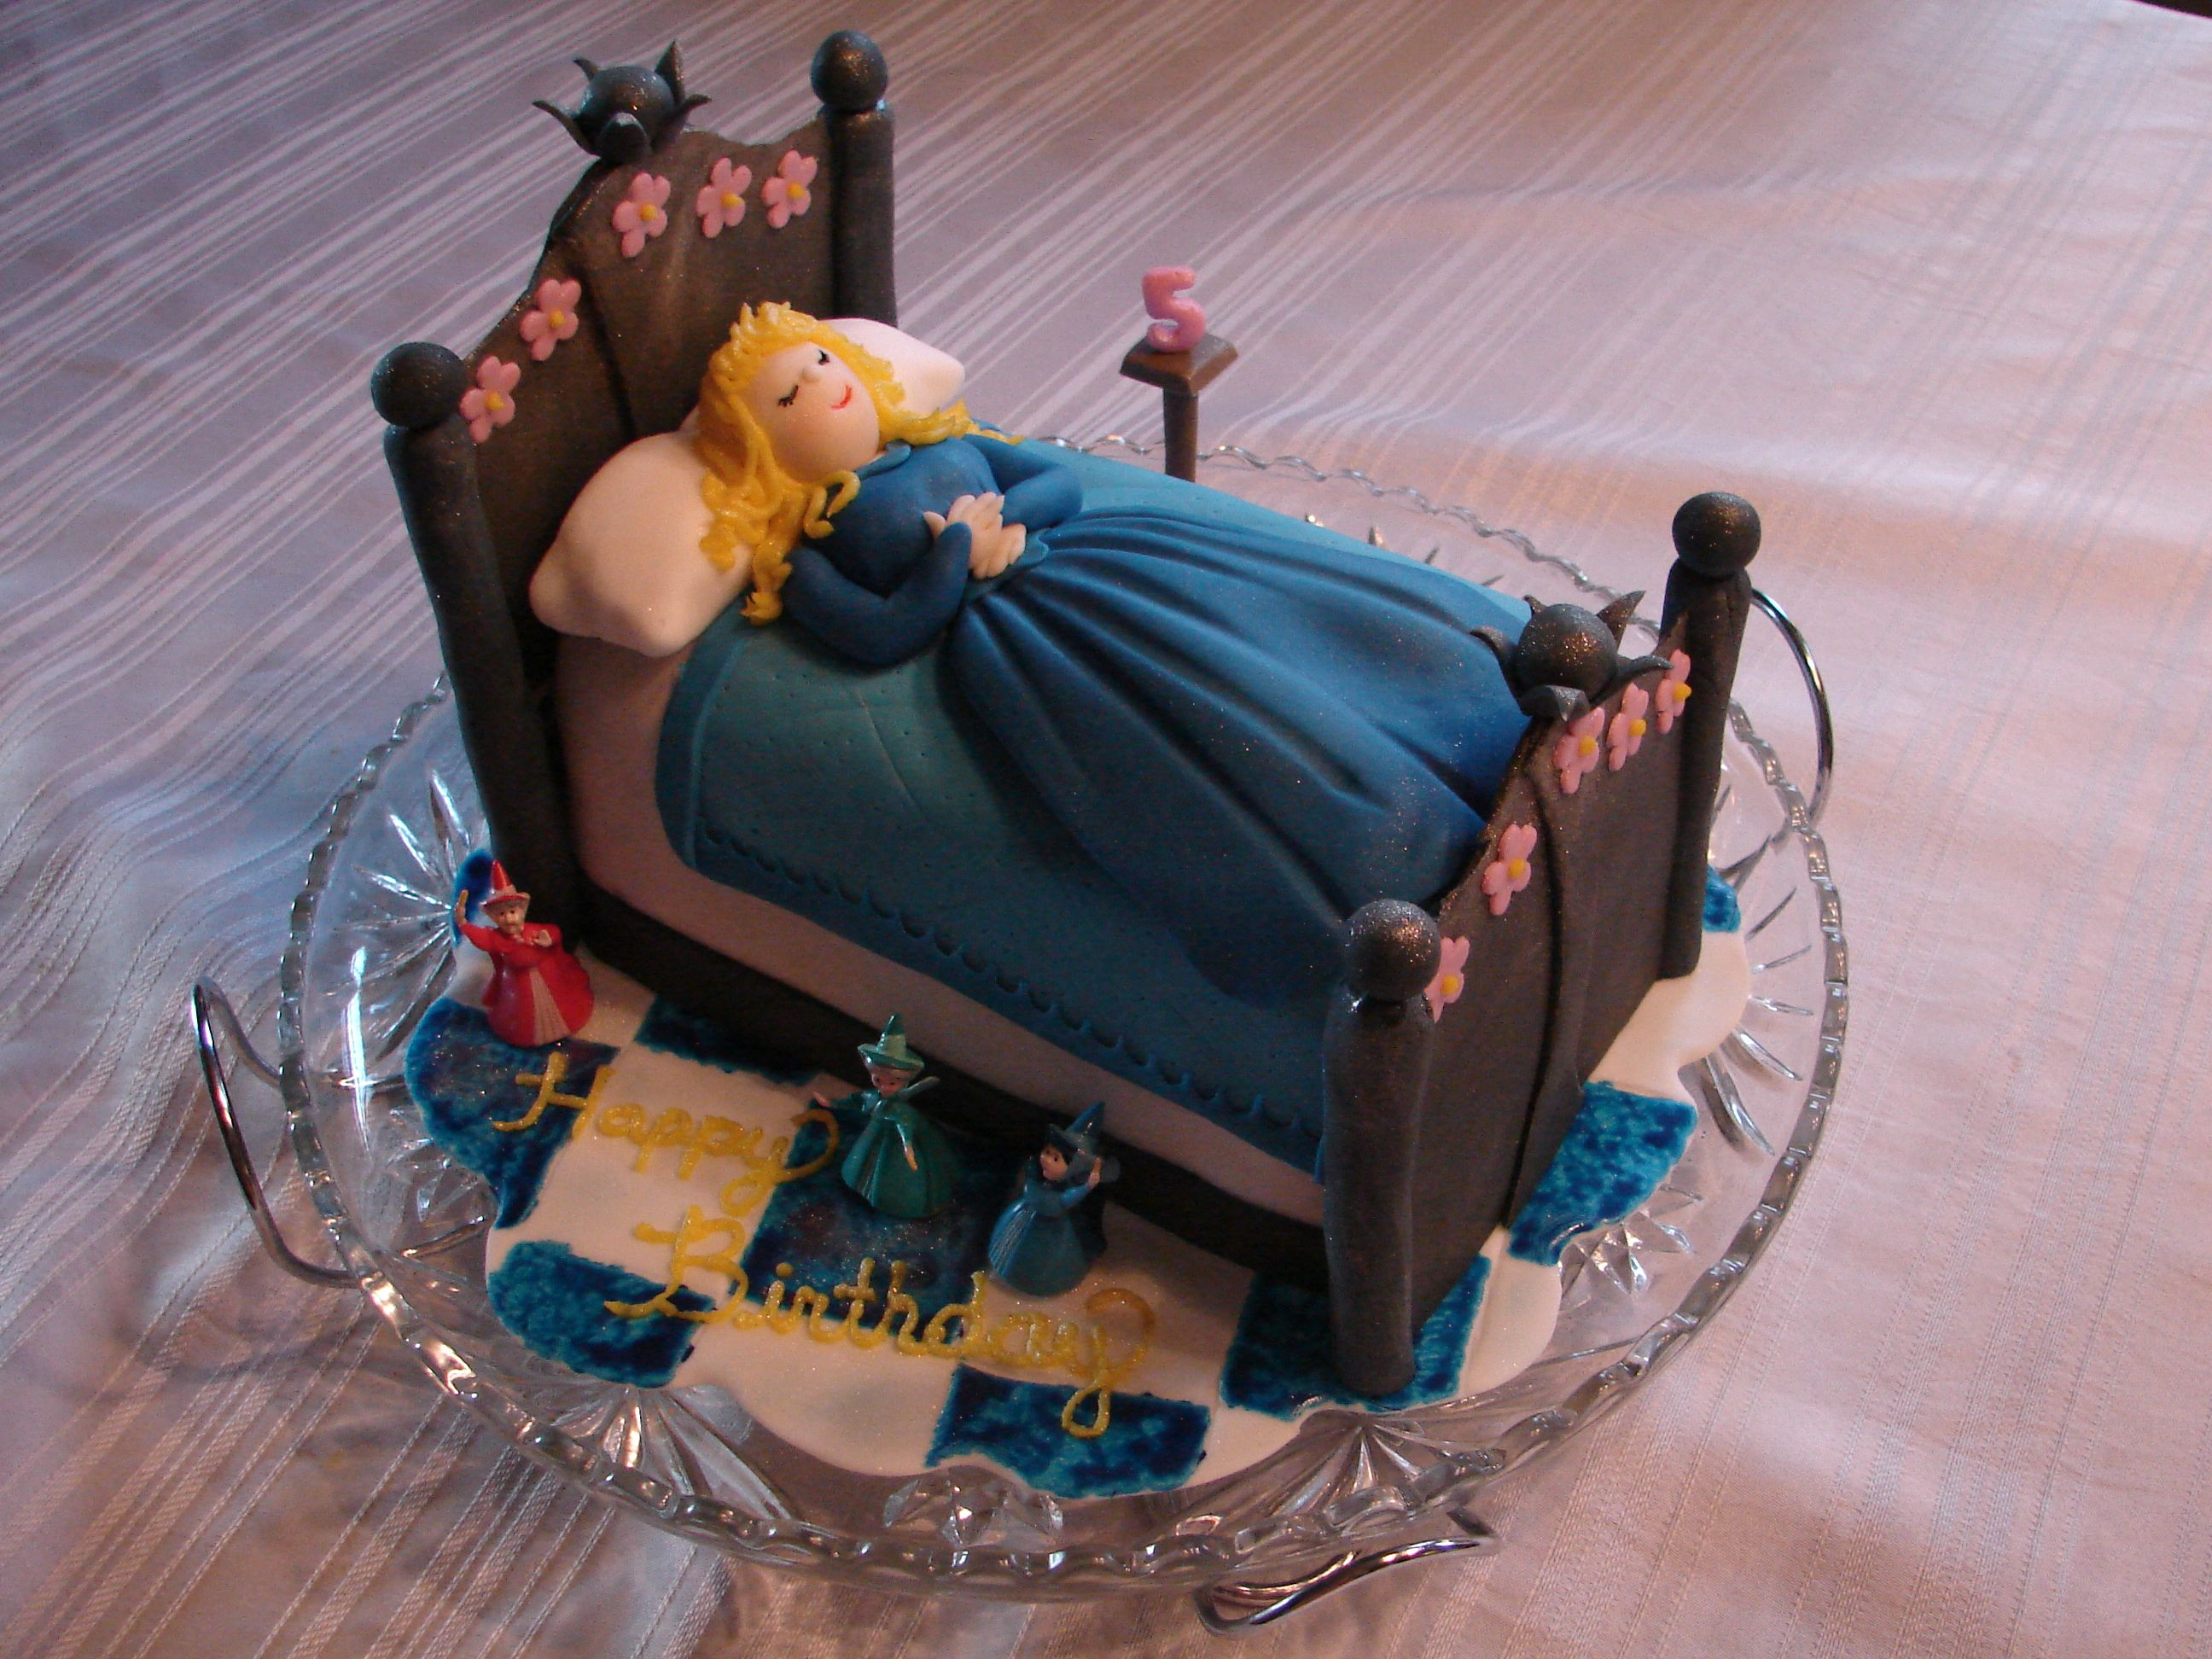 Sleeping Beauty cake I made for my daughter's 5th birthday!